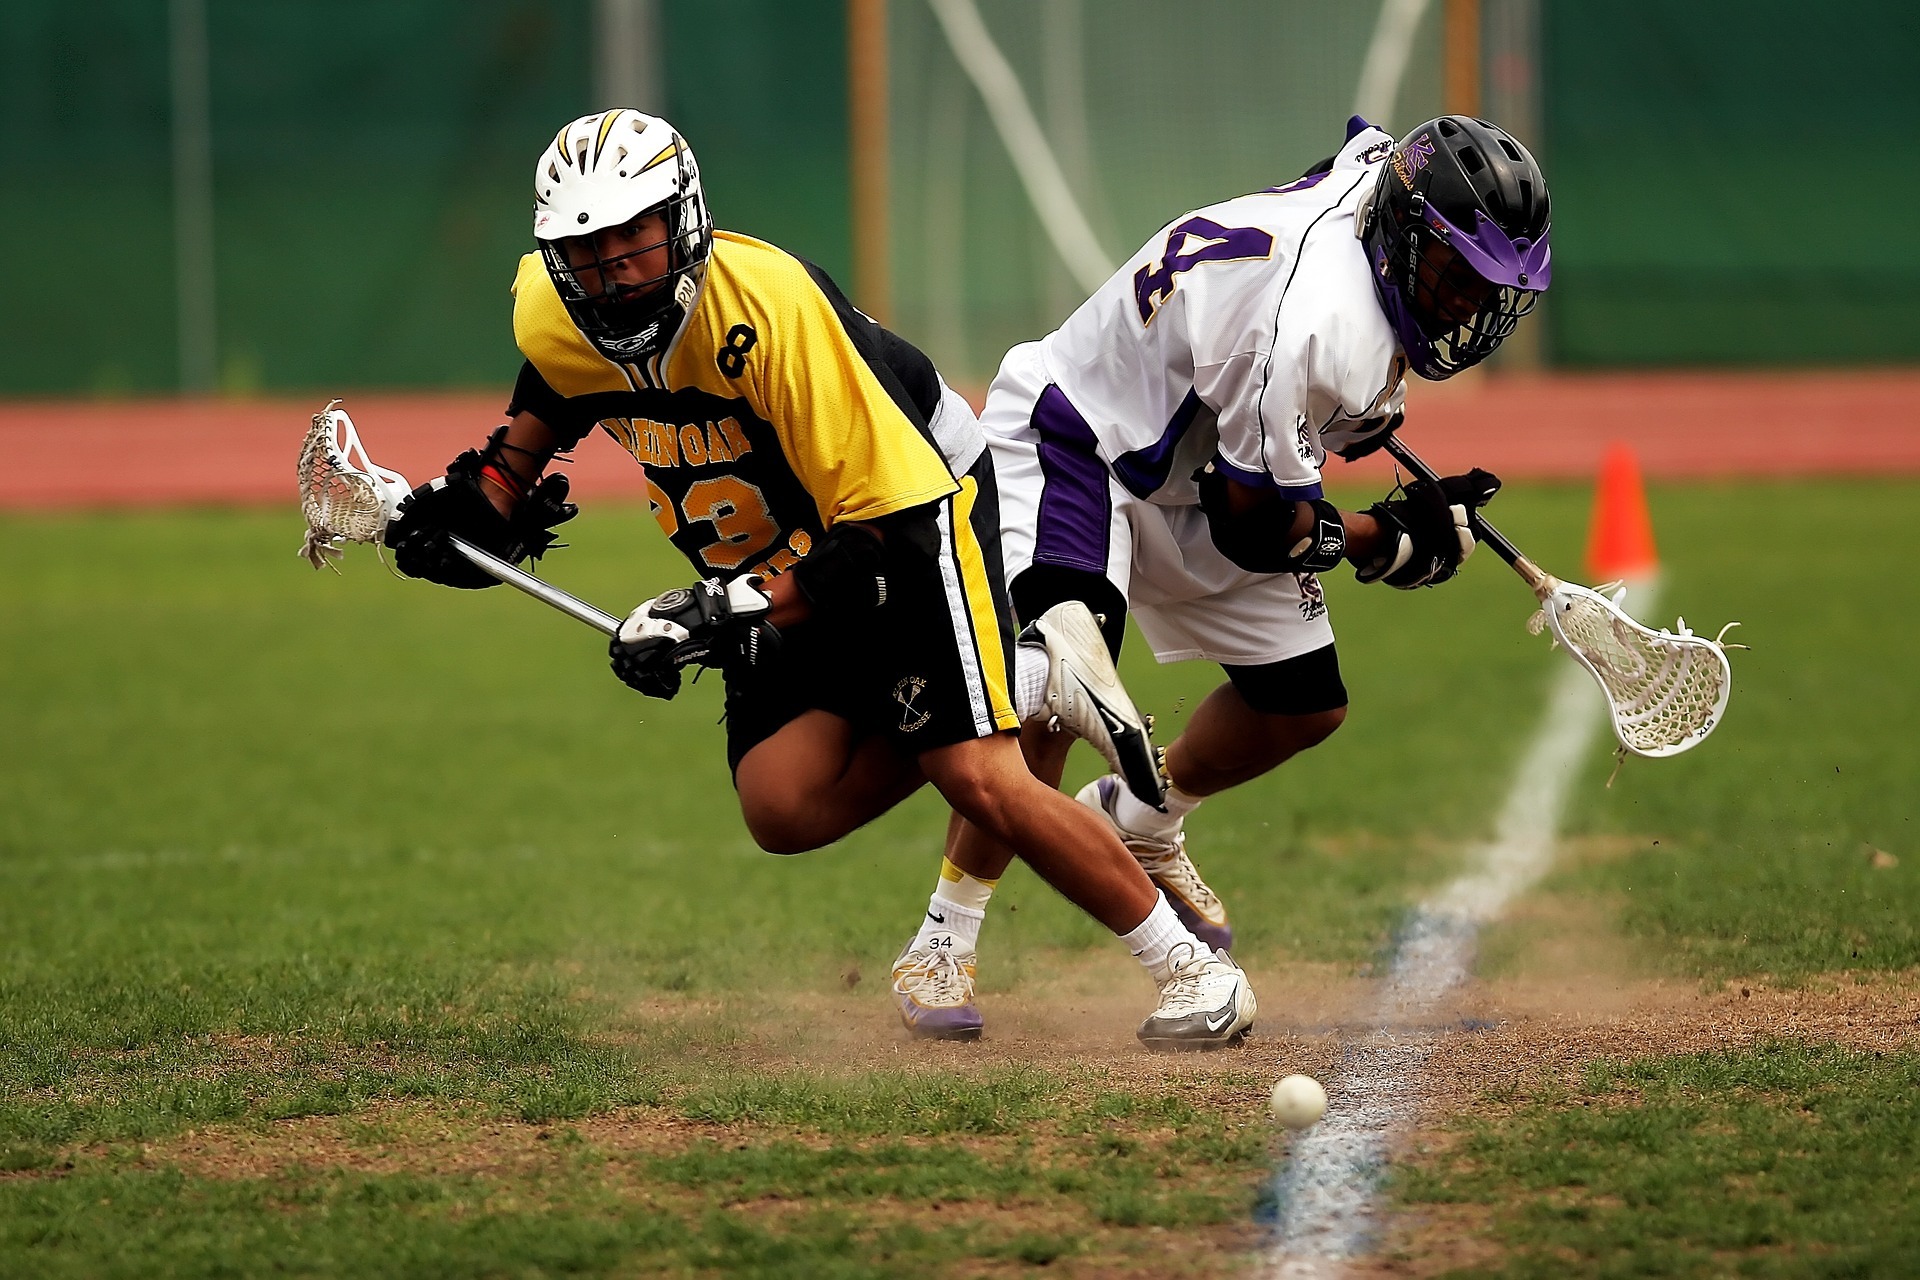 https://pixabay.com/photos/lacrosse-lax-lacrosse-game-game-1478384/